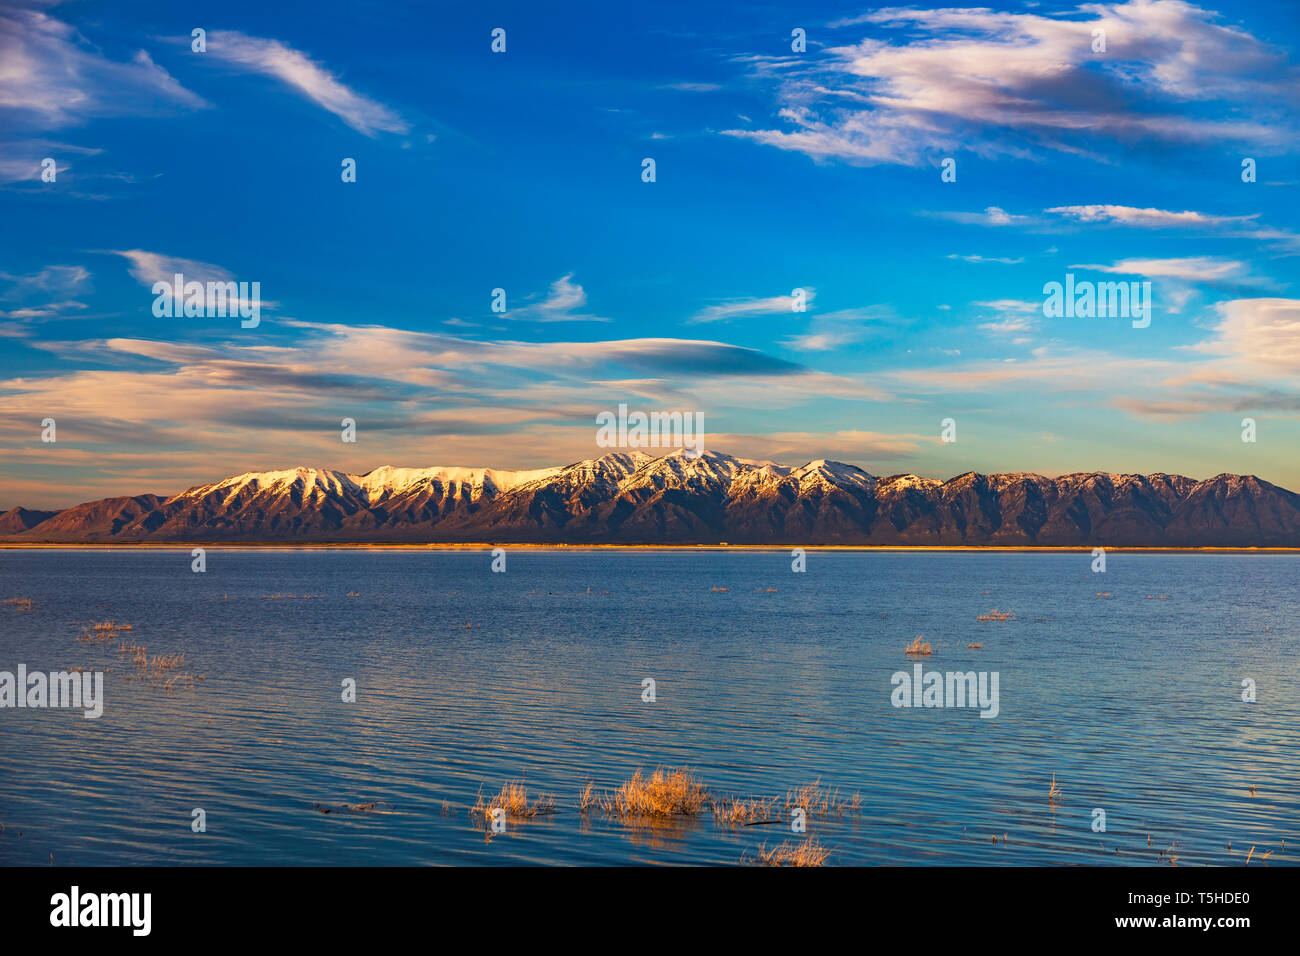 This is a late-afternoon scenic view of the large pond in Unit 2 at the Bear River Migratory Bird Refuge near Brigham City, Utah, USA. - Stock Image